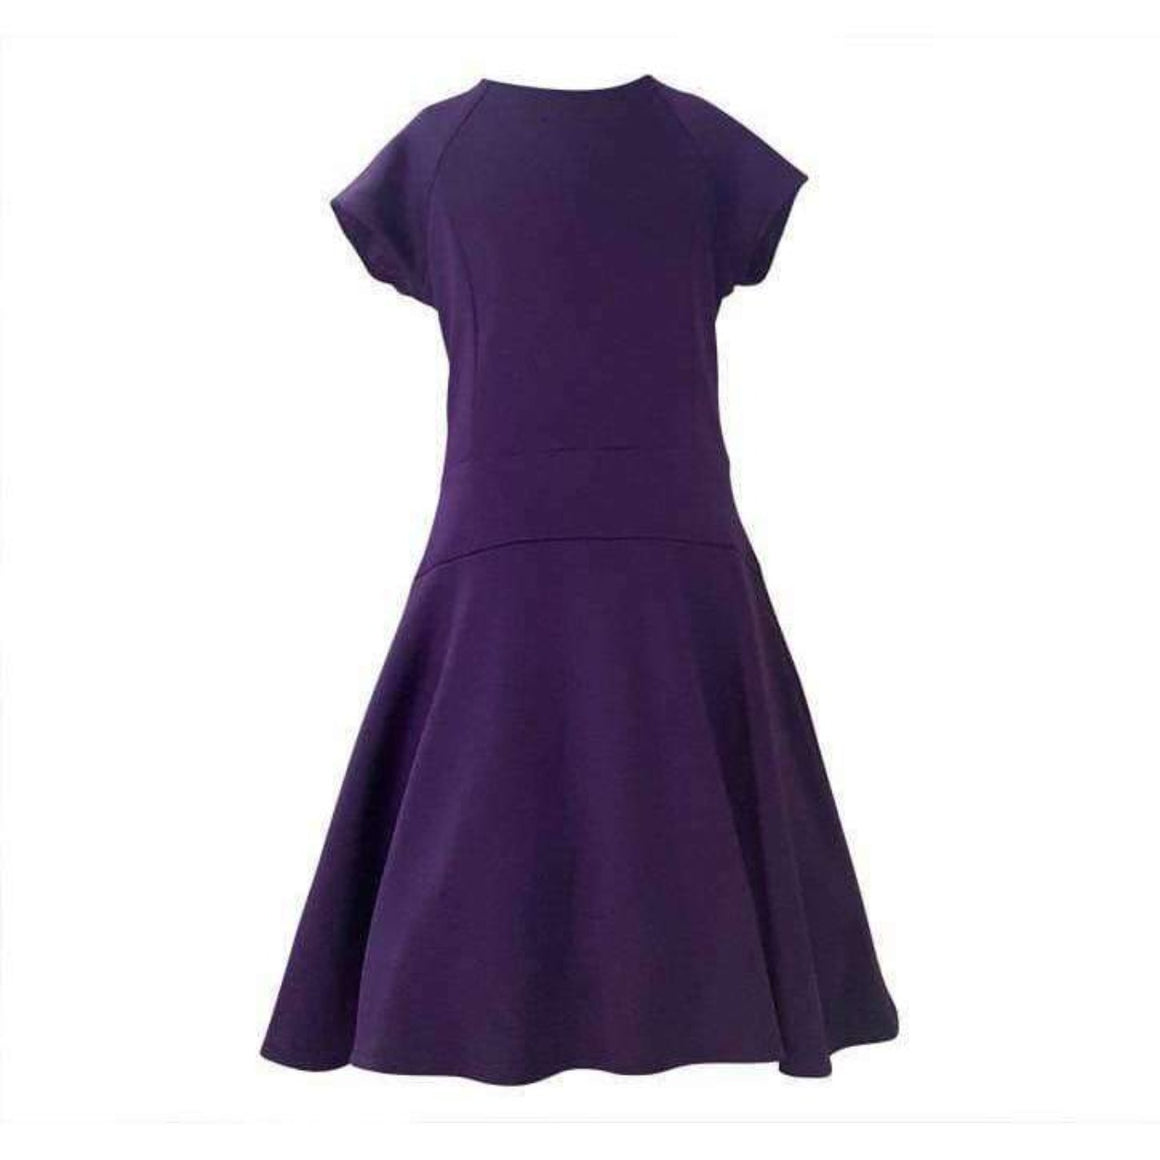 Adrian East online Girls Purple Dropwaist Dress